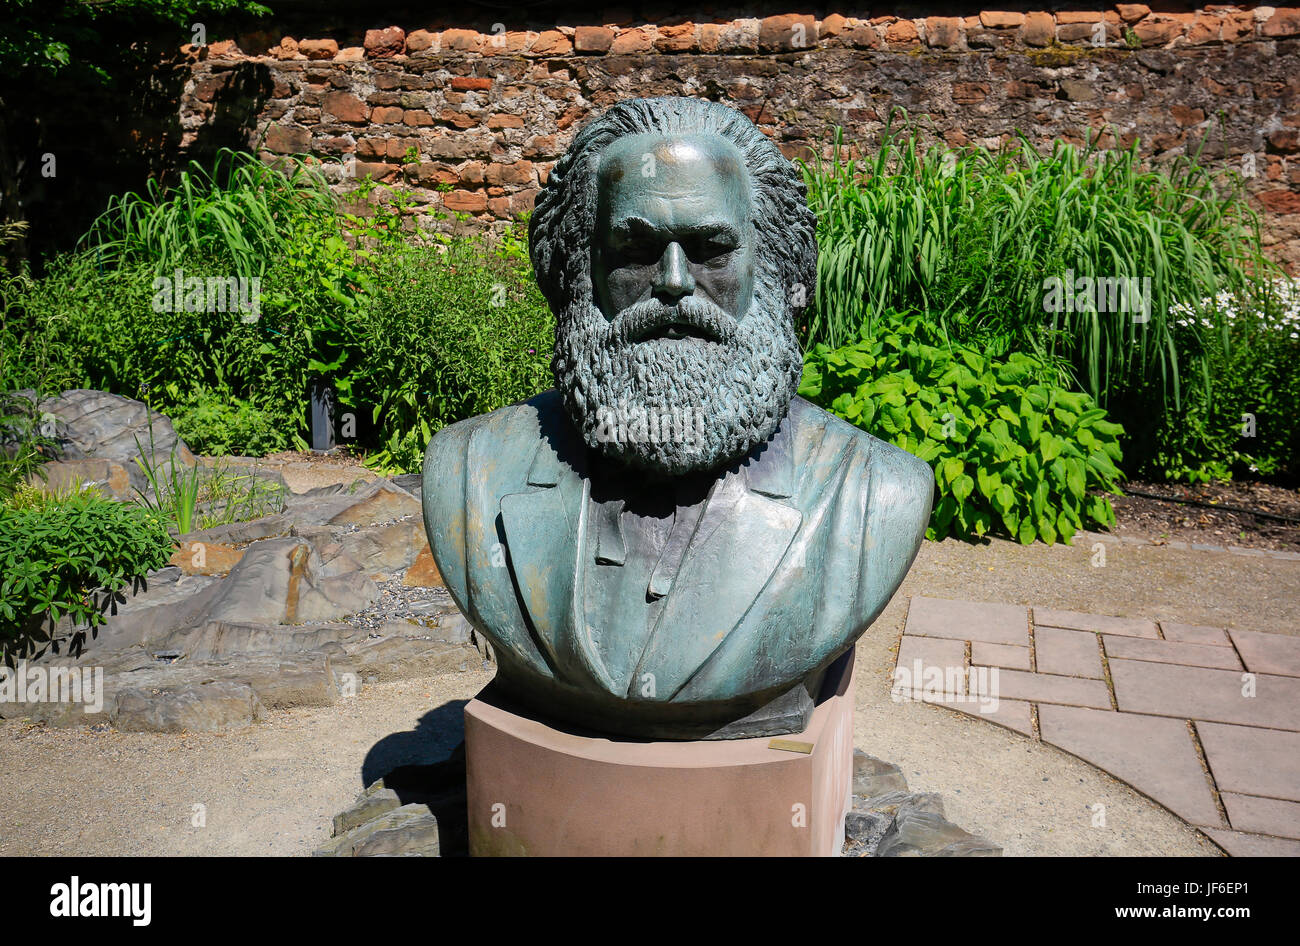 Bust of Karl Marx in the garden of the Karl-Marx-Haus, the birthplace of Karl Marx, Trier, Rhineland-Palatinate, - Stock Image